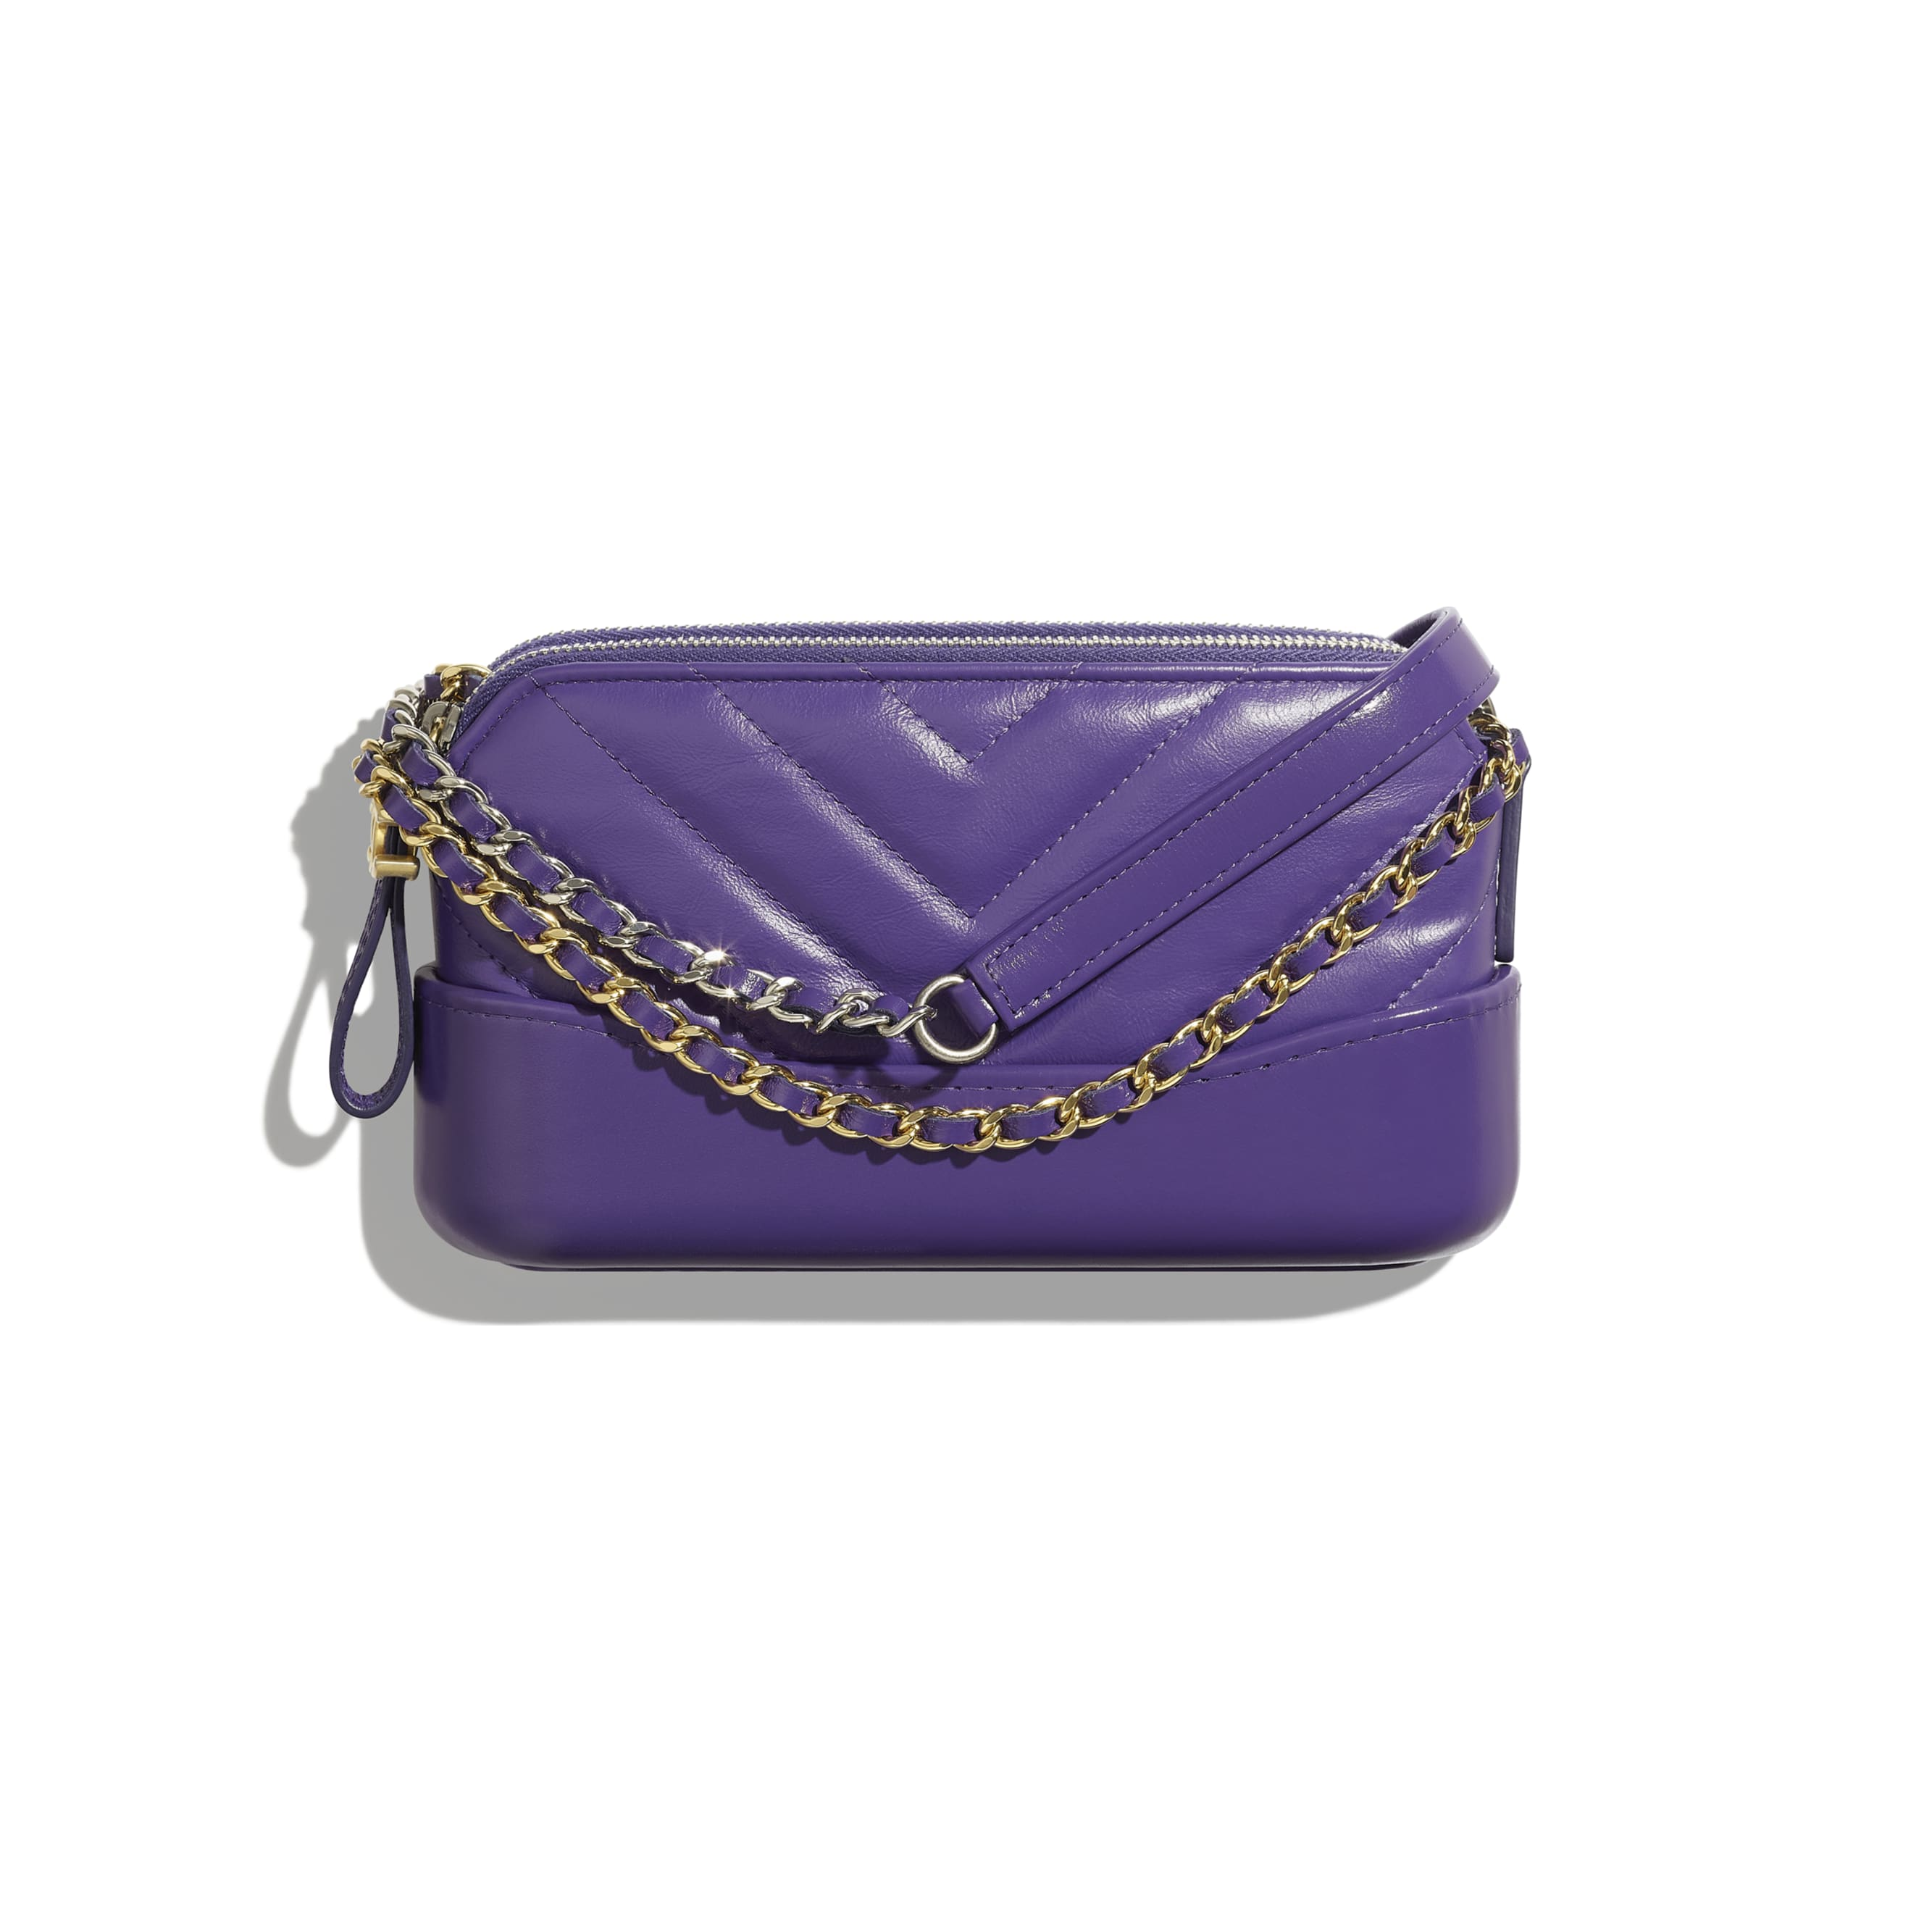 Clutch With Chain - Purple - Aged Calfskin, Smooth Calfskin, Gold-Tone, Silver-Tone & Ruthenium-Finish Metal - CHANEL - Default view - see standard sized version